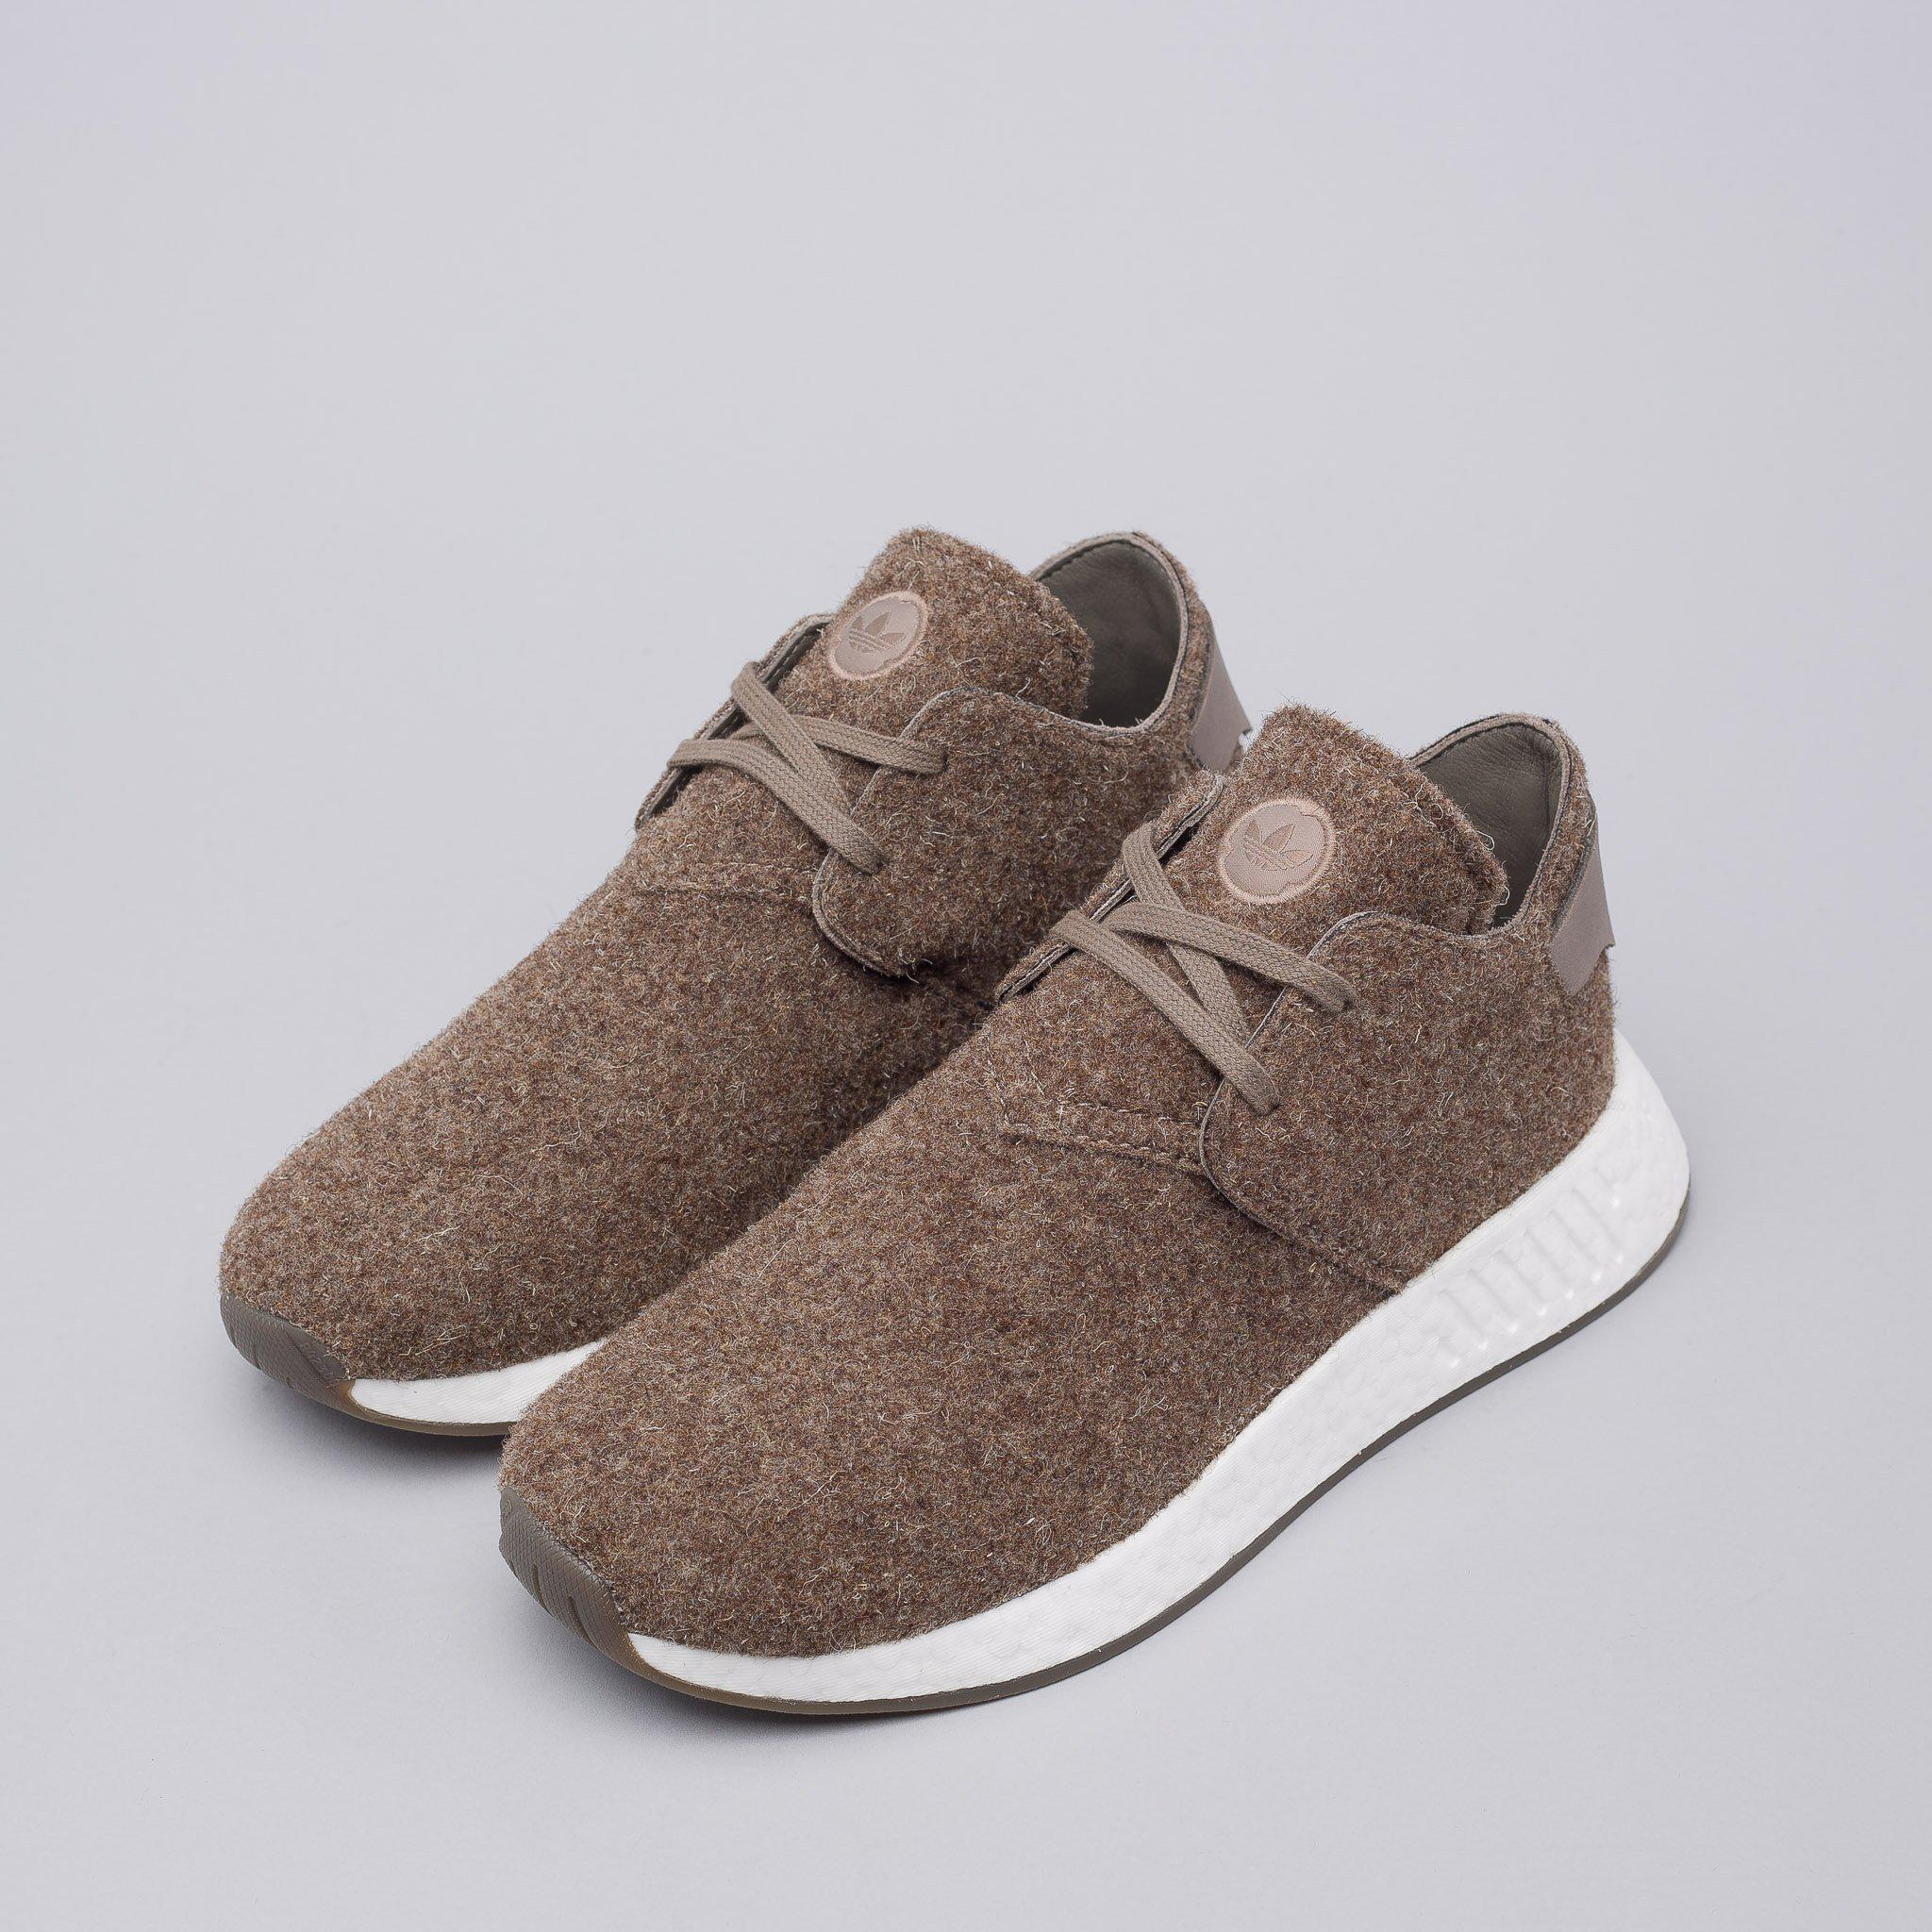 e2aa7af30 Lyst - adidas X Wings+horns Nmd C2 Chukka in Brown for Men